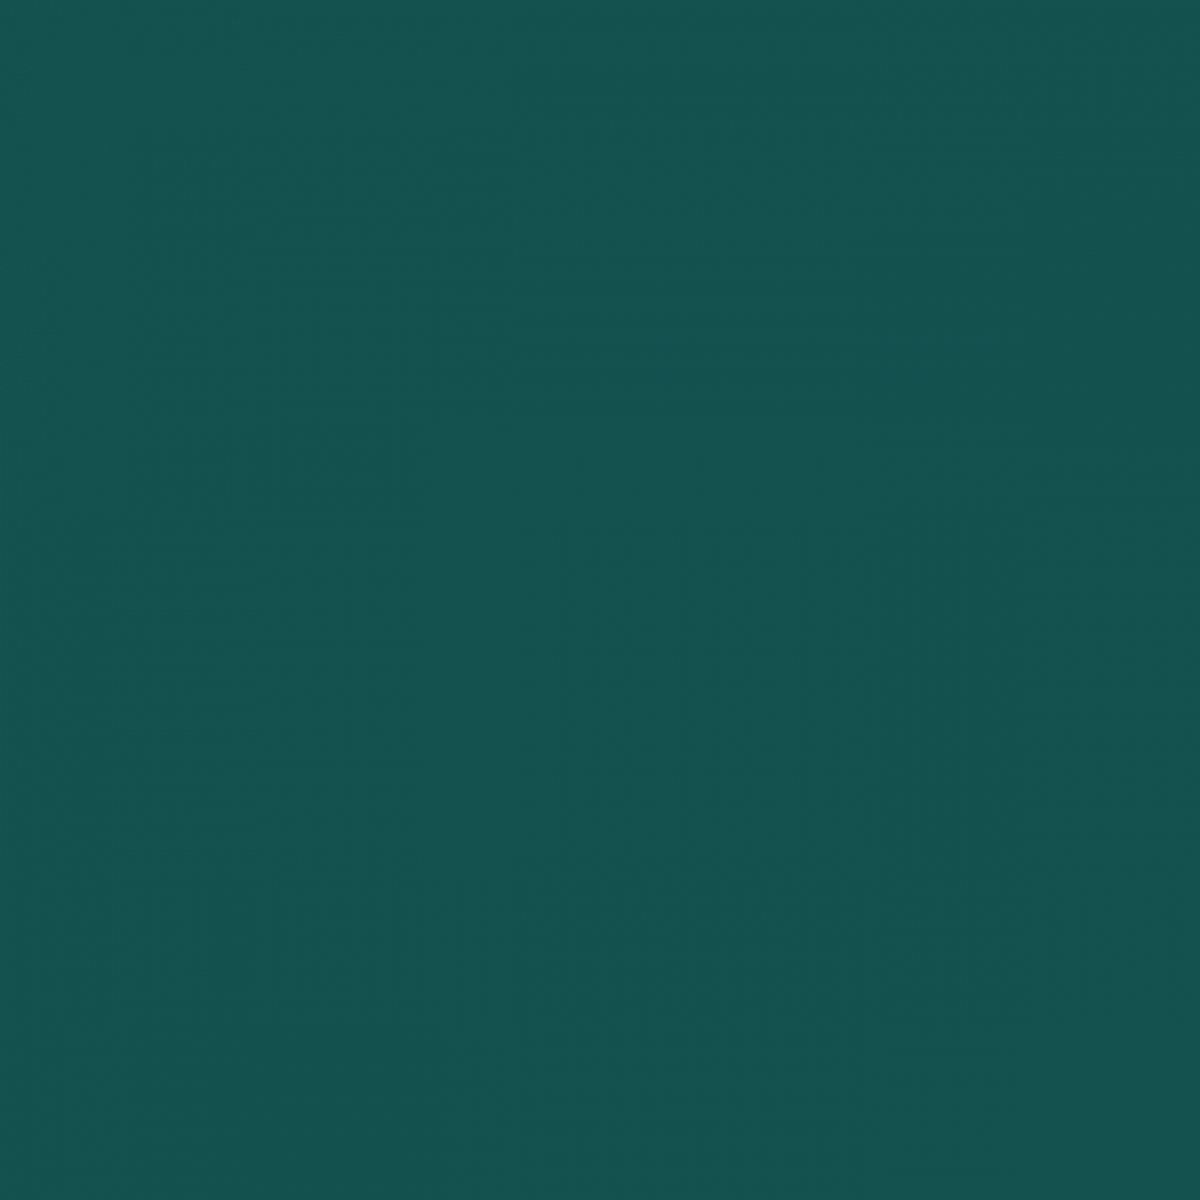 1274-swoon-emerald.png